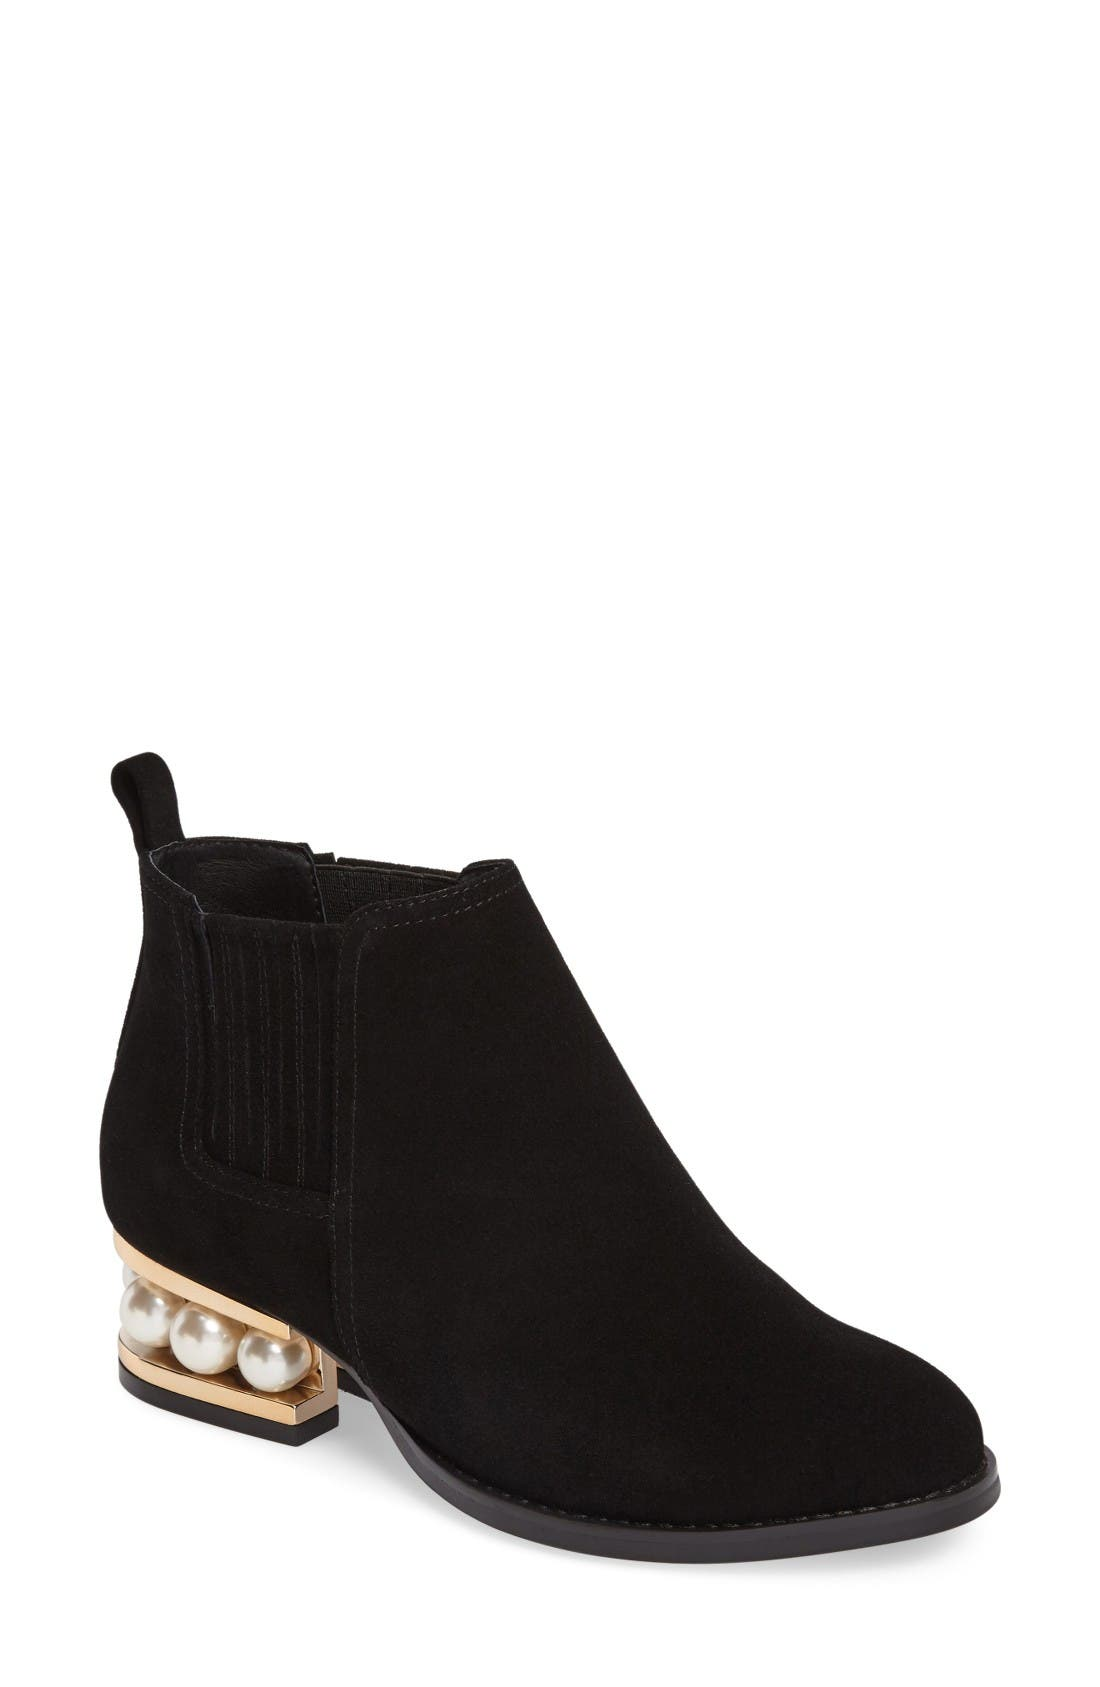 Alternate Image 1 Selected - Jeffrey Campbell Warr-MP Pearly Orbed Chelsea Boot (Women)